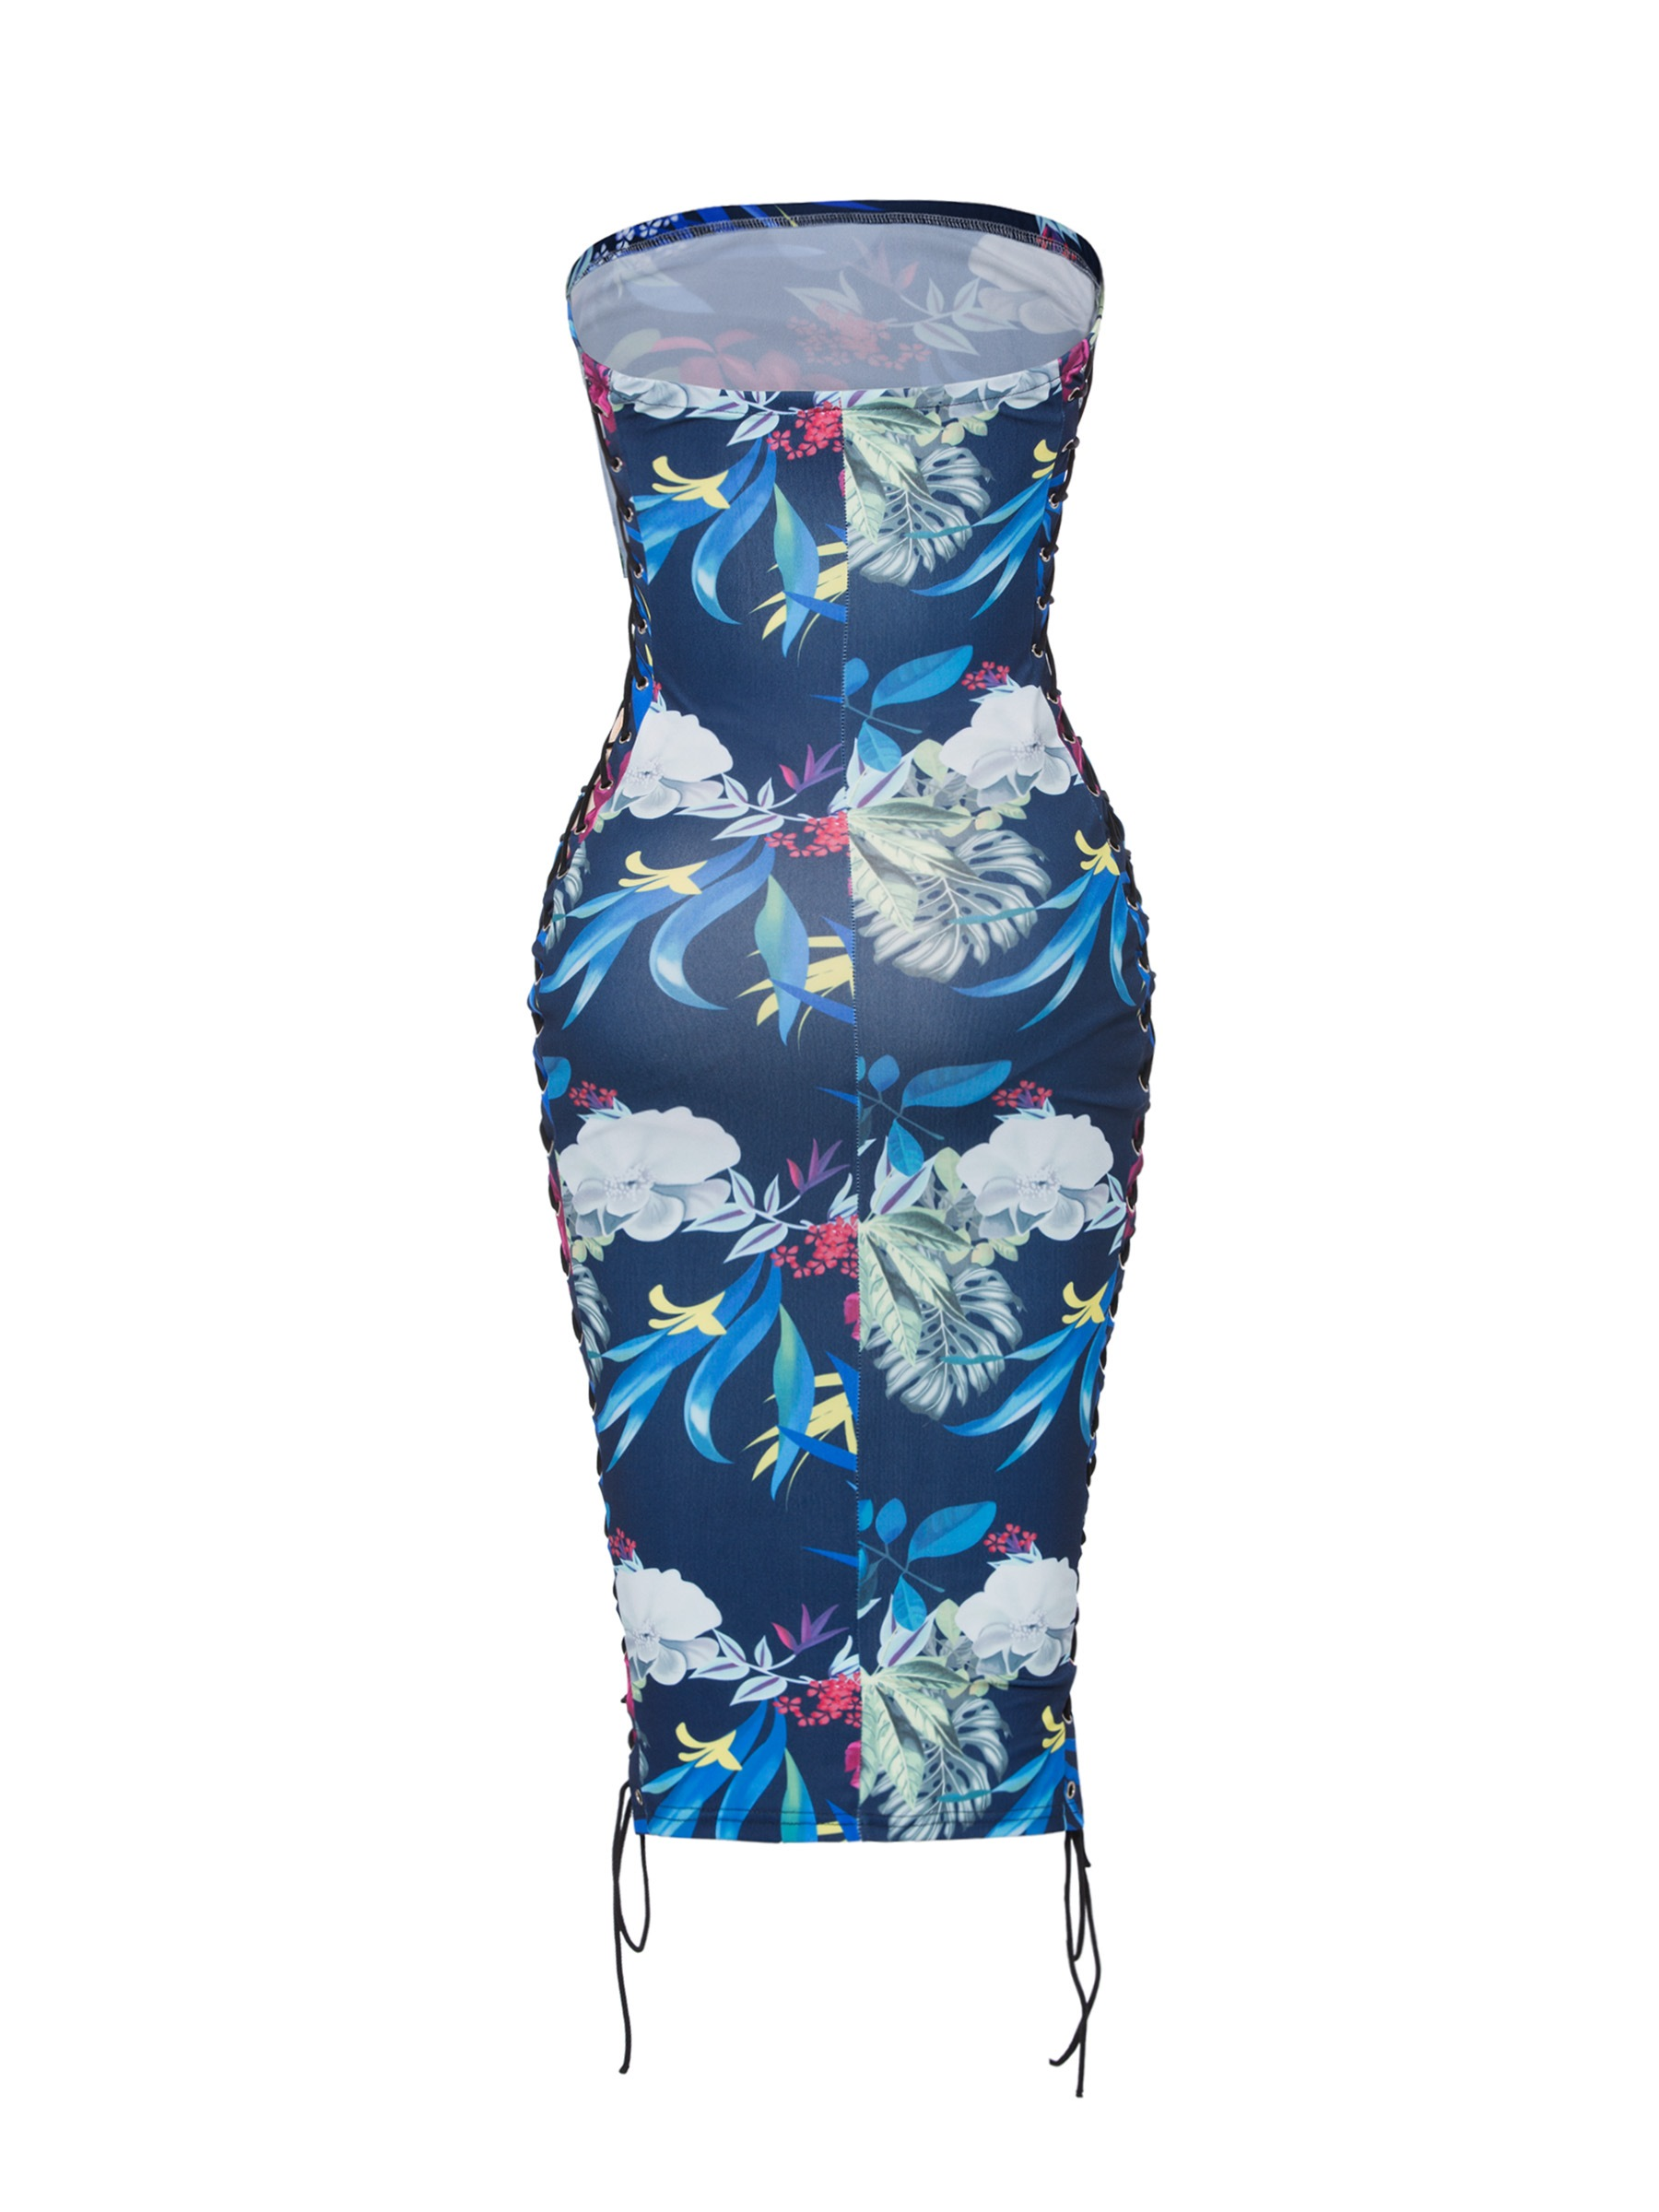 Ericdress Blue Floral Straples Hollow Backless Lace-Up Bodycon Dress